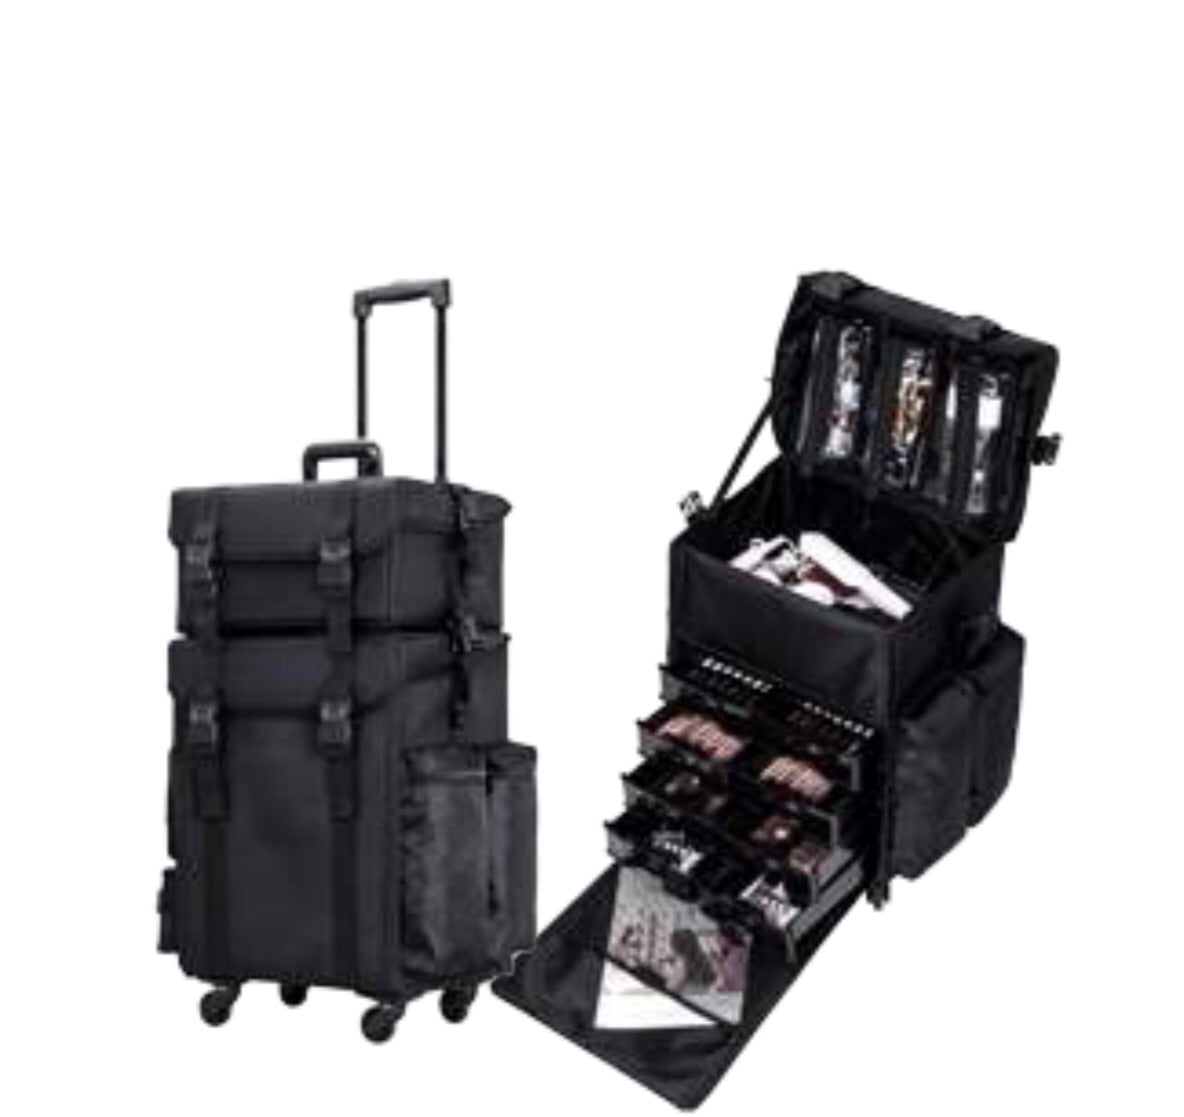 Regal Beauty Traveling Case